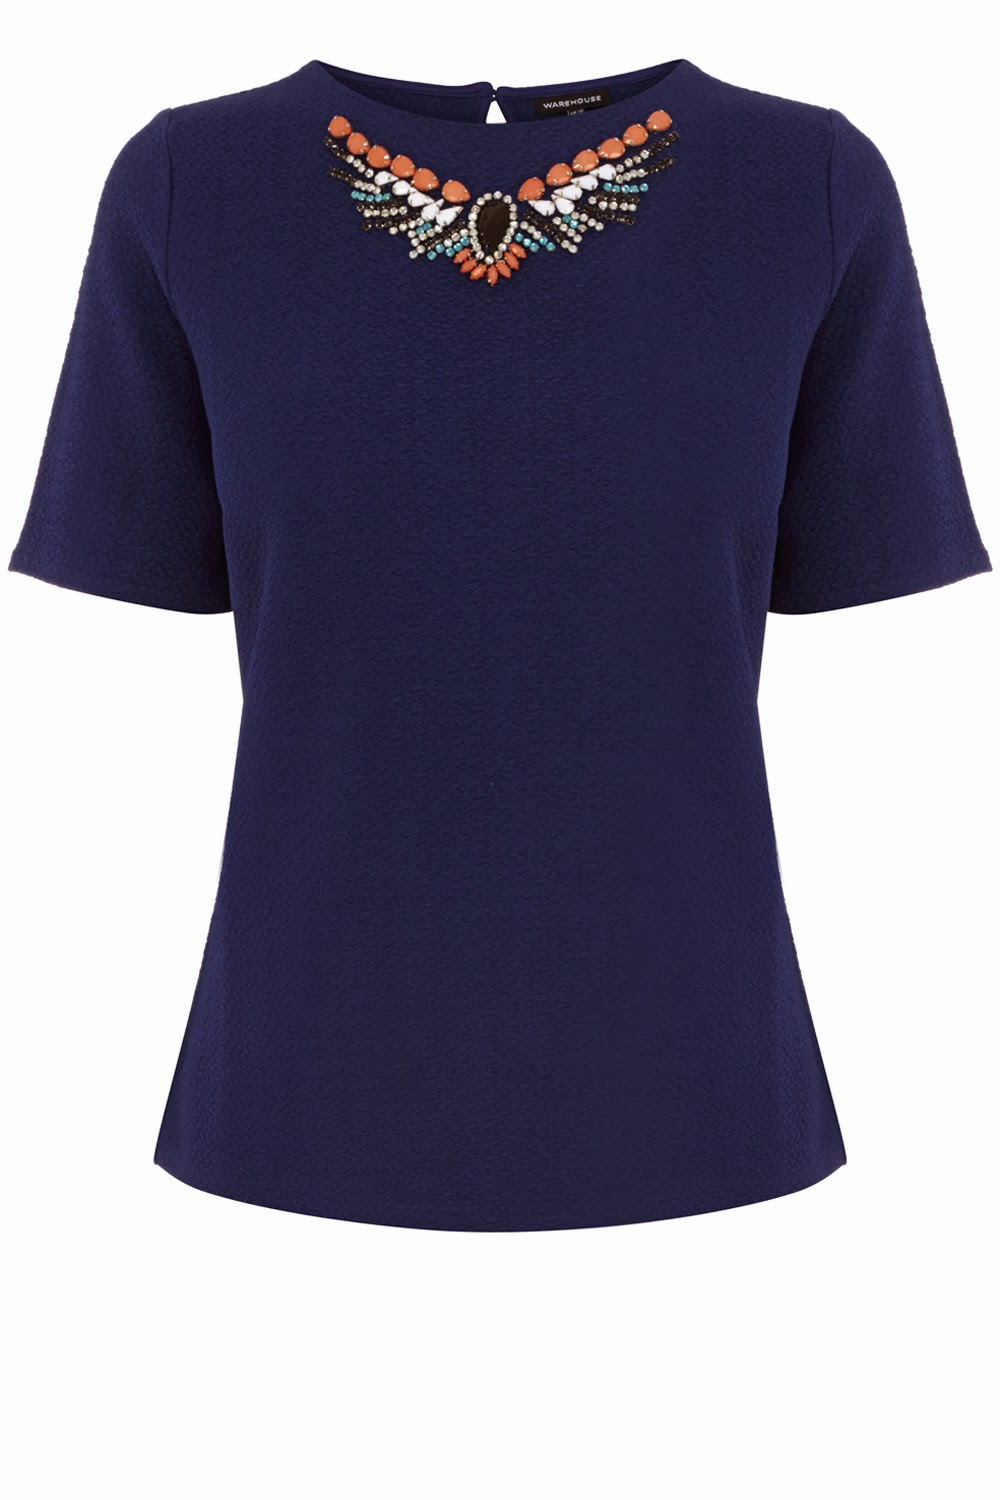 navy jewel top